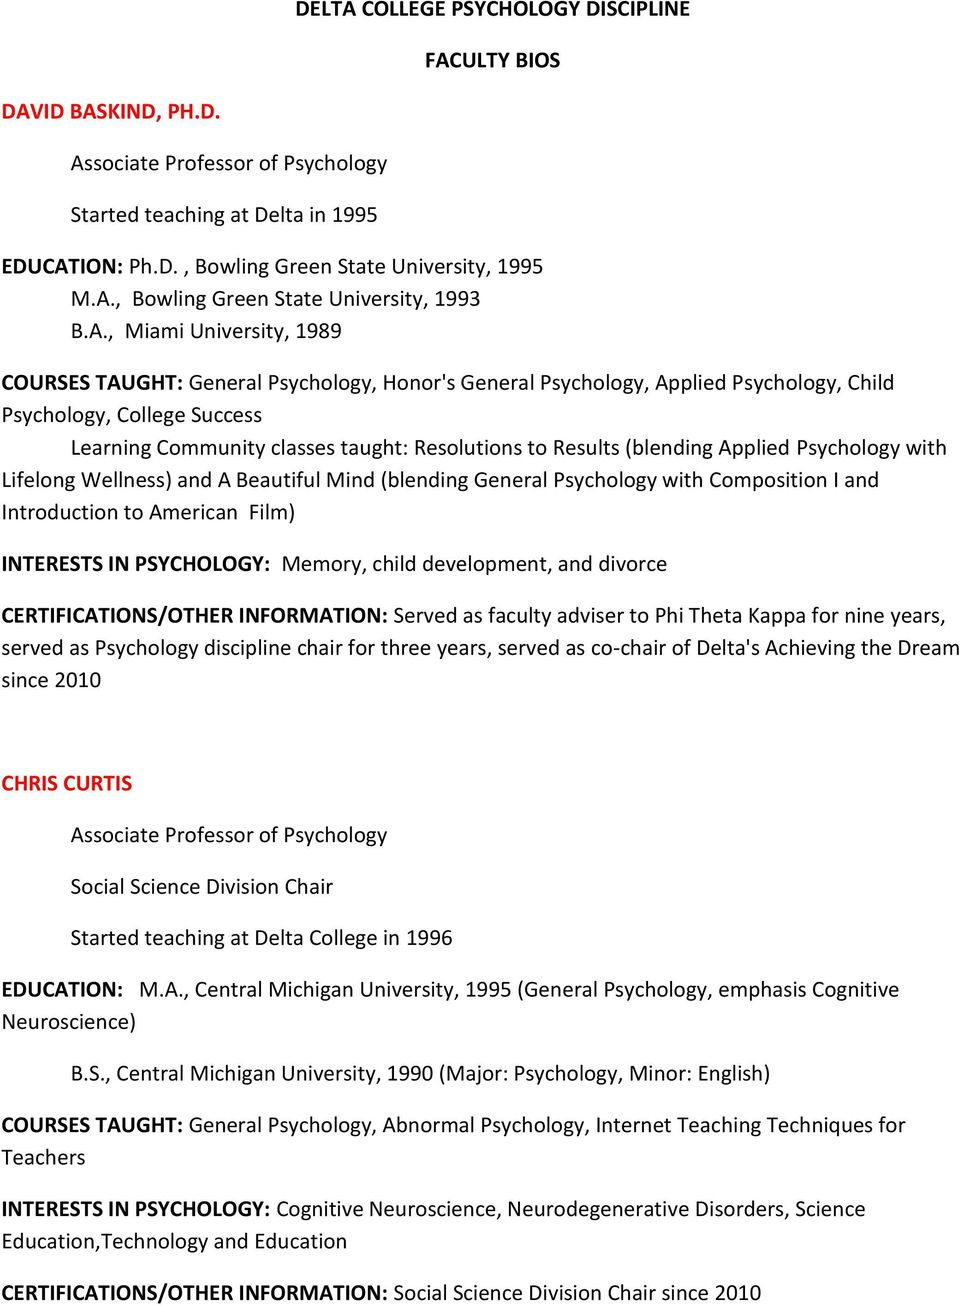 Results (blending Applied Psychology with Lifelong Wellness) and A Beautiful Mind (blending General Psychology with Composition I and Introduction to American Film) INTERESTS IN PSYCHOLOGY: Memory,